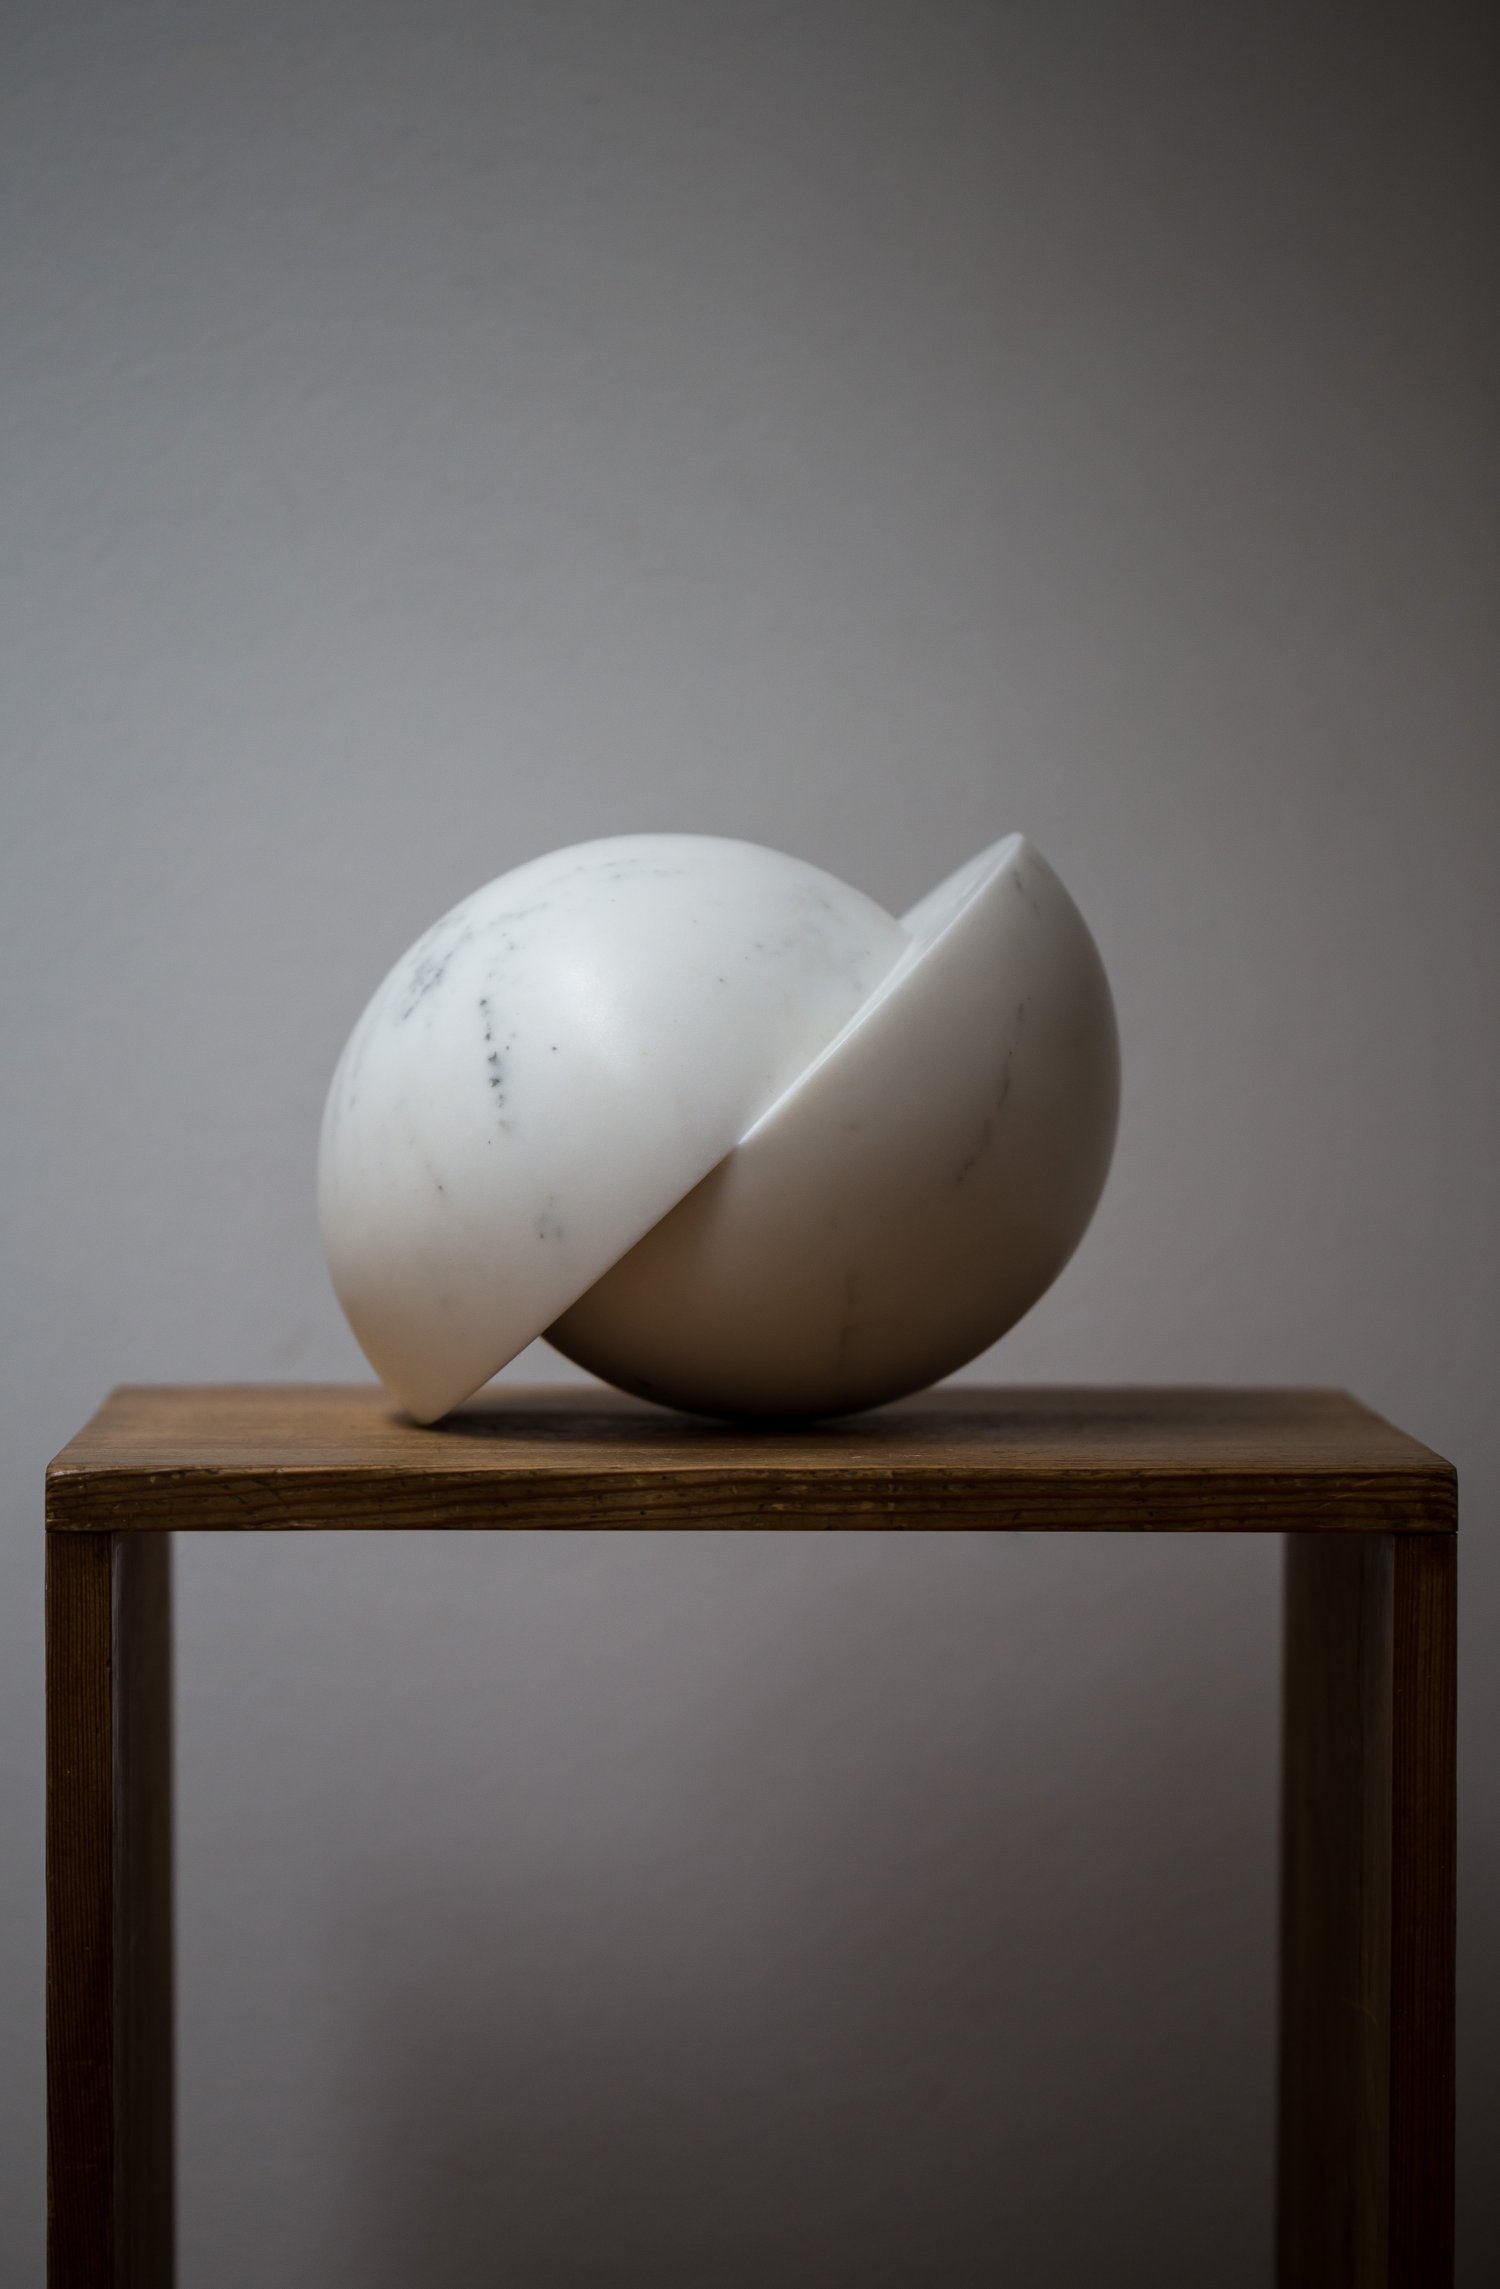 Carrara Marble Sculpture by Piet Van Loocke